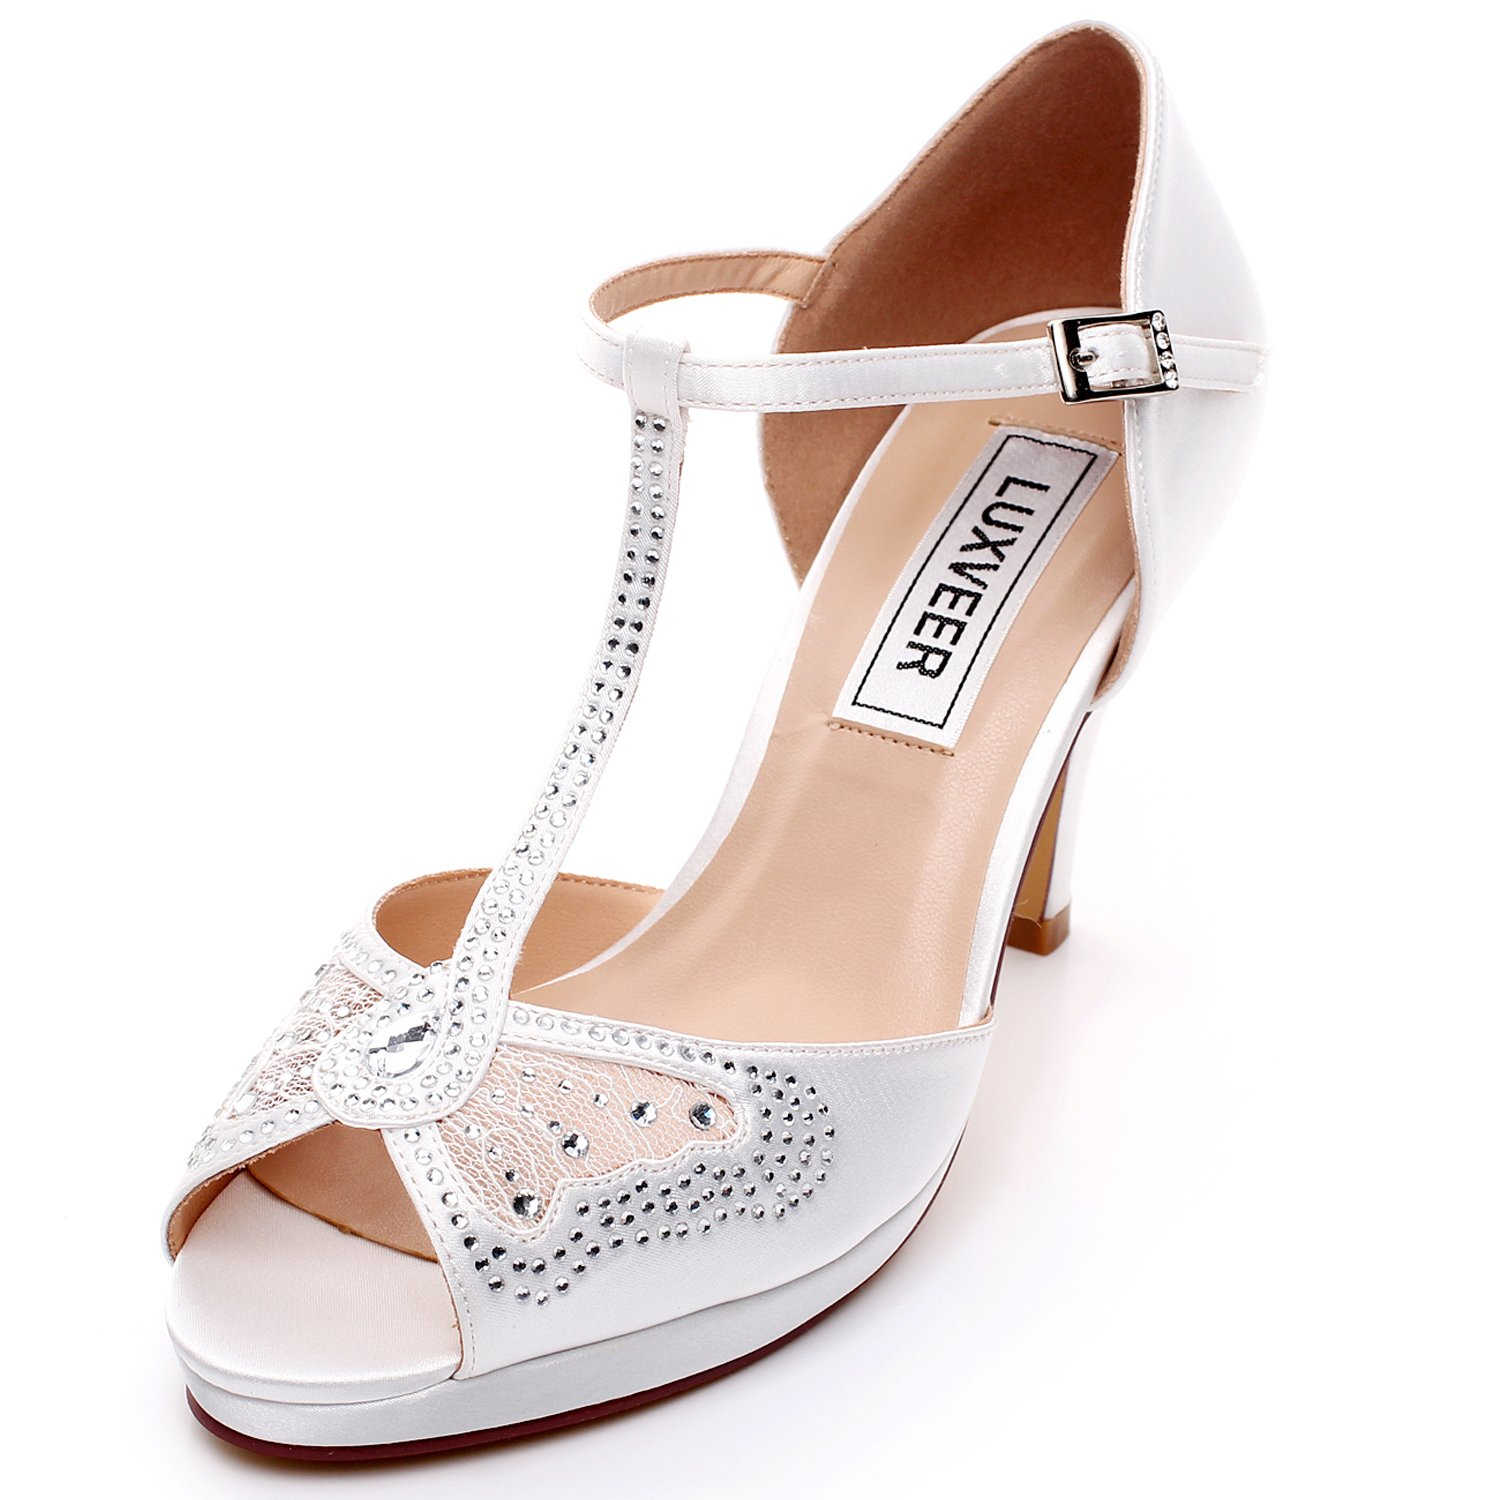 LUXVEER Wedding Sandals Heels for Women ,Silver Rhinestone and Lace Butterfly - Heels 3.5 inch-HK-0192C-Ivory-EU40 Wedding Shoes by LUXVEER (Image #1)